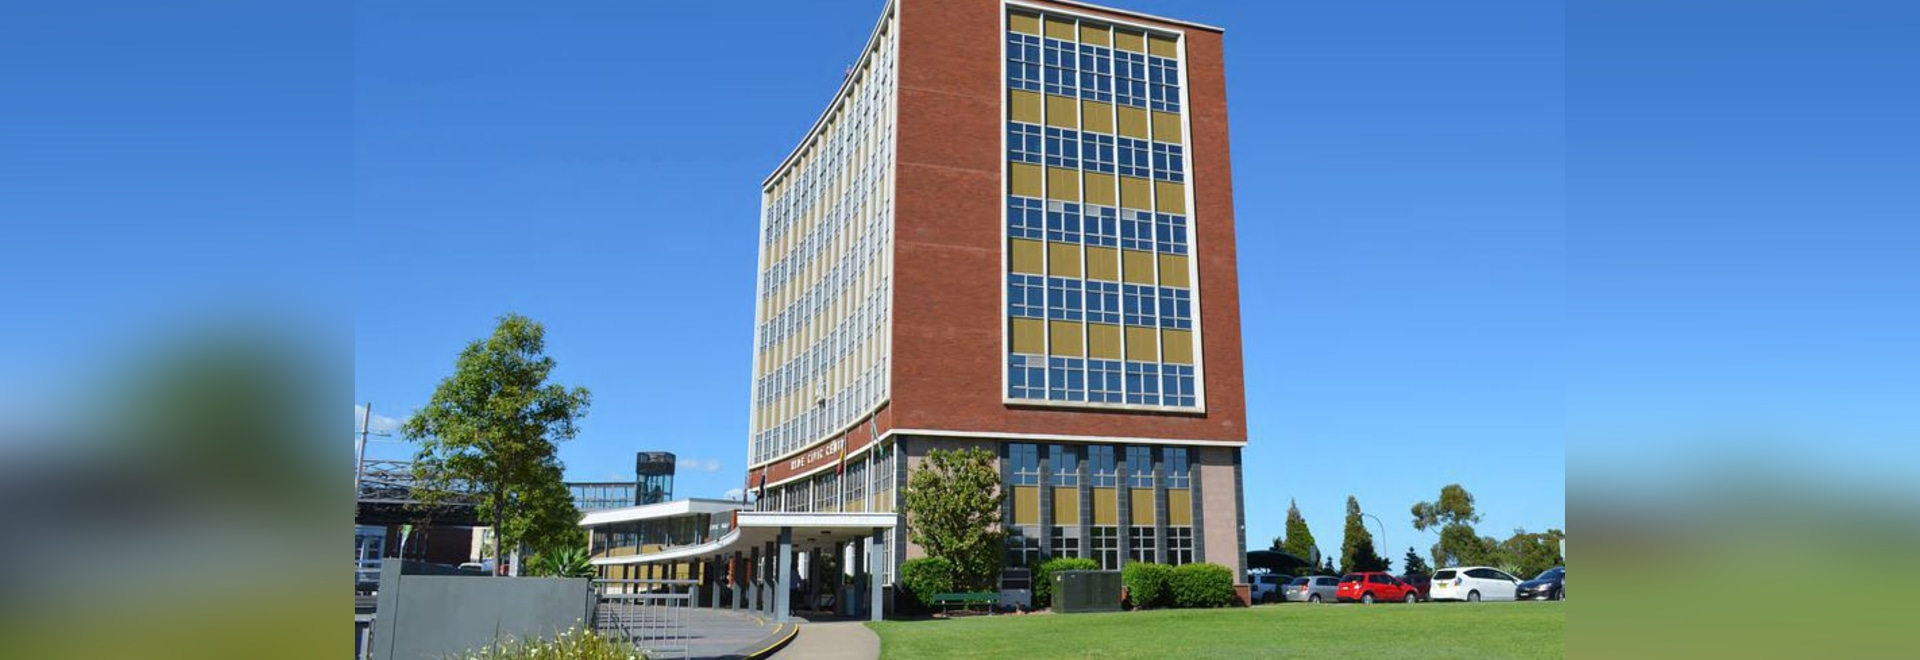 The existing Ryde Civic Centre by Leslie J. Buckland and C. Druce.